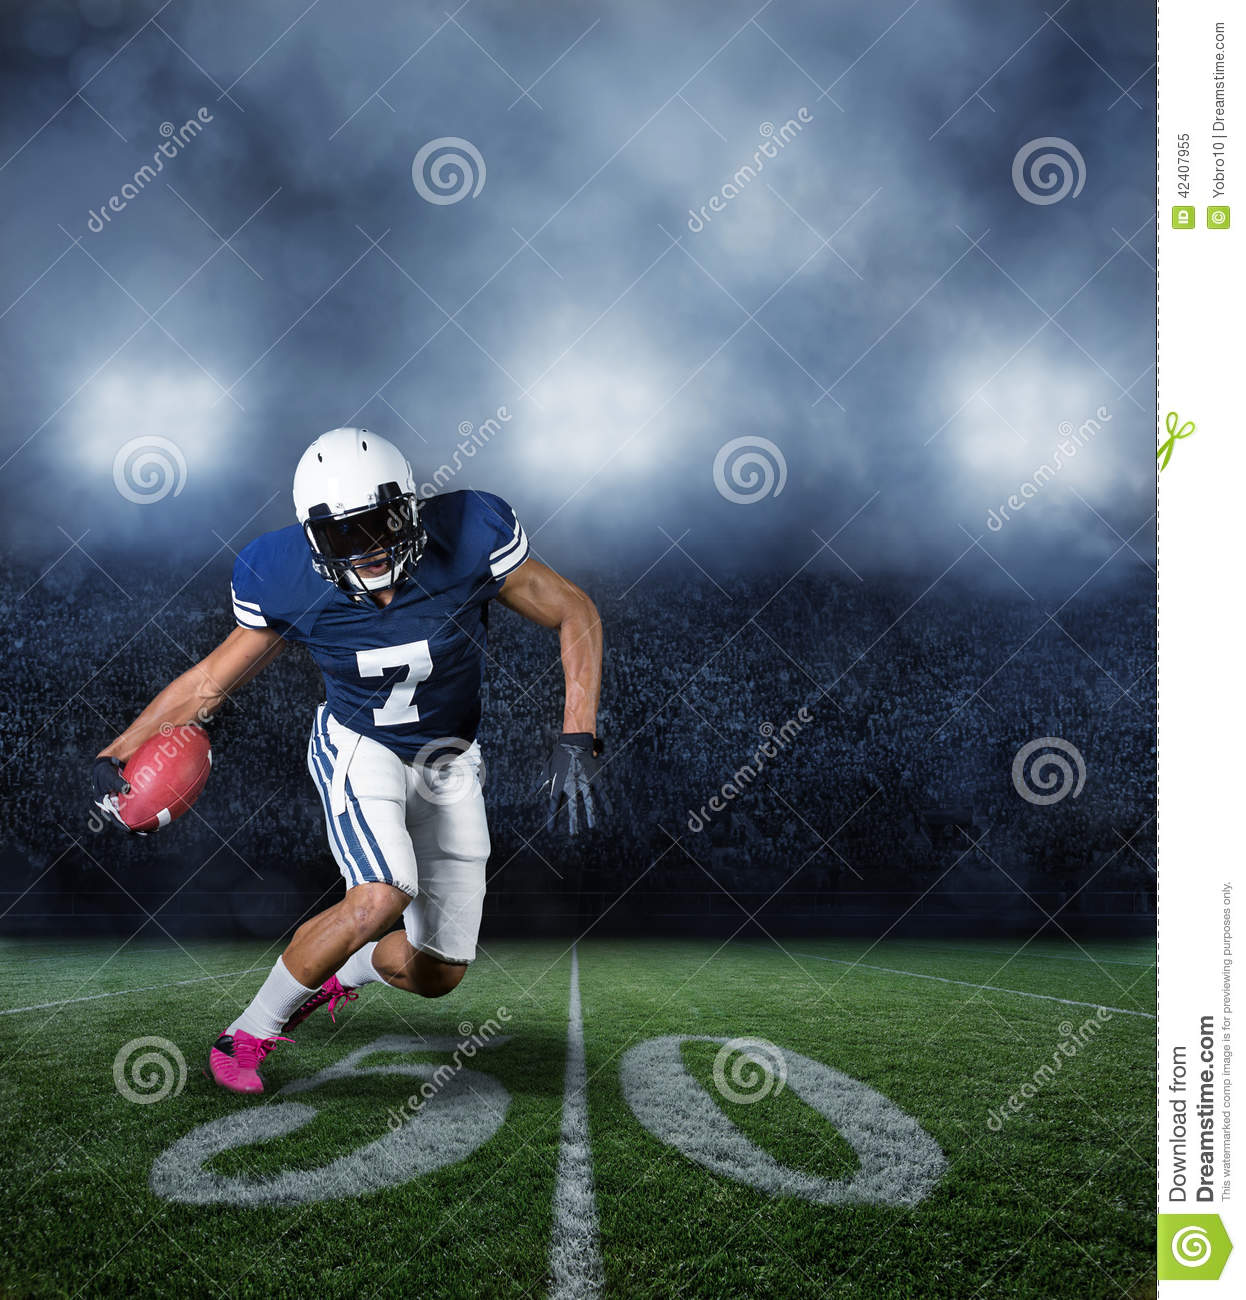 American Football Player During A Game Stock Photo - Image: 42407955